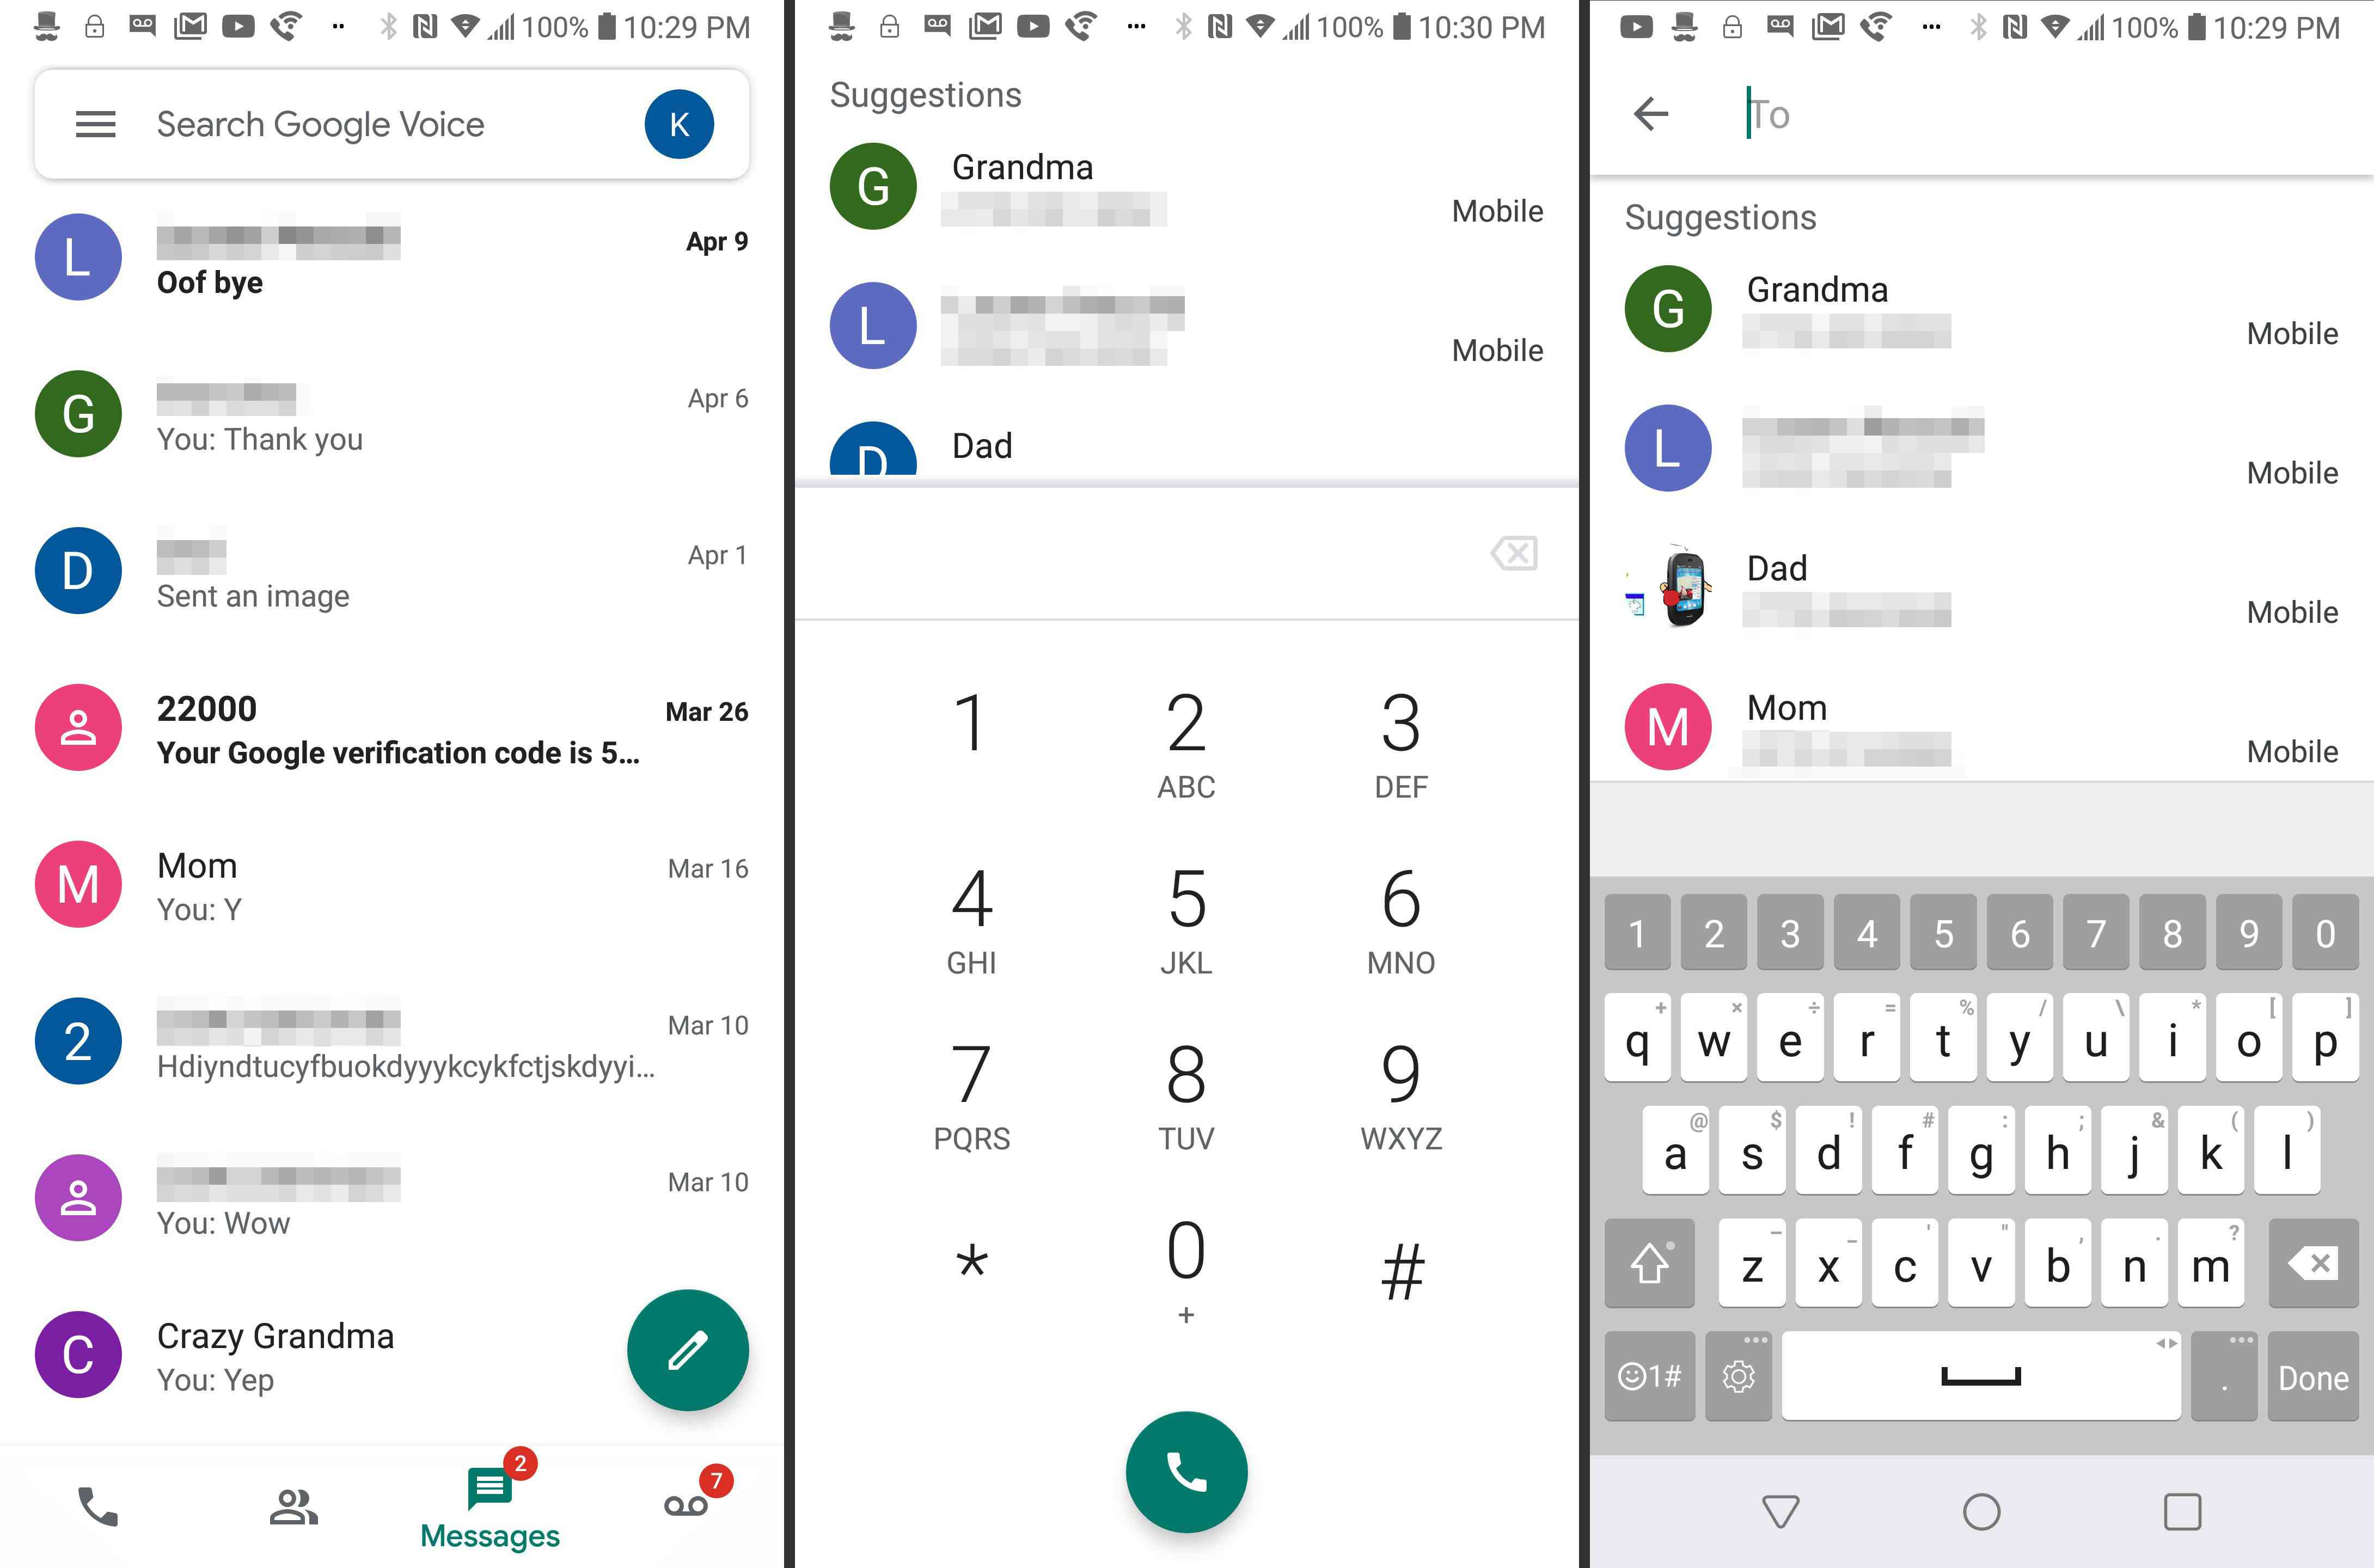 Google Voice app on Android